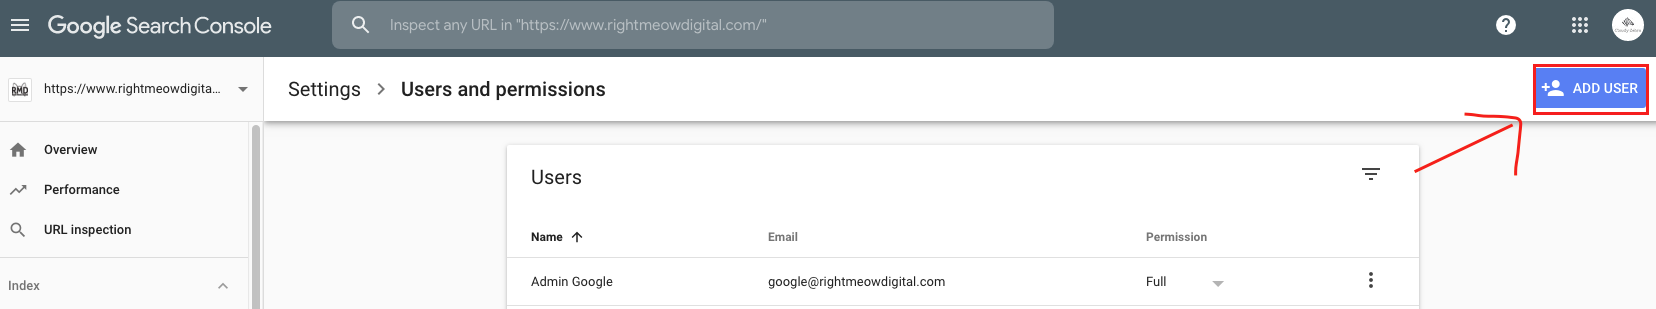 Google search console add a user step 3.png